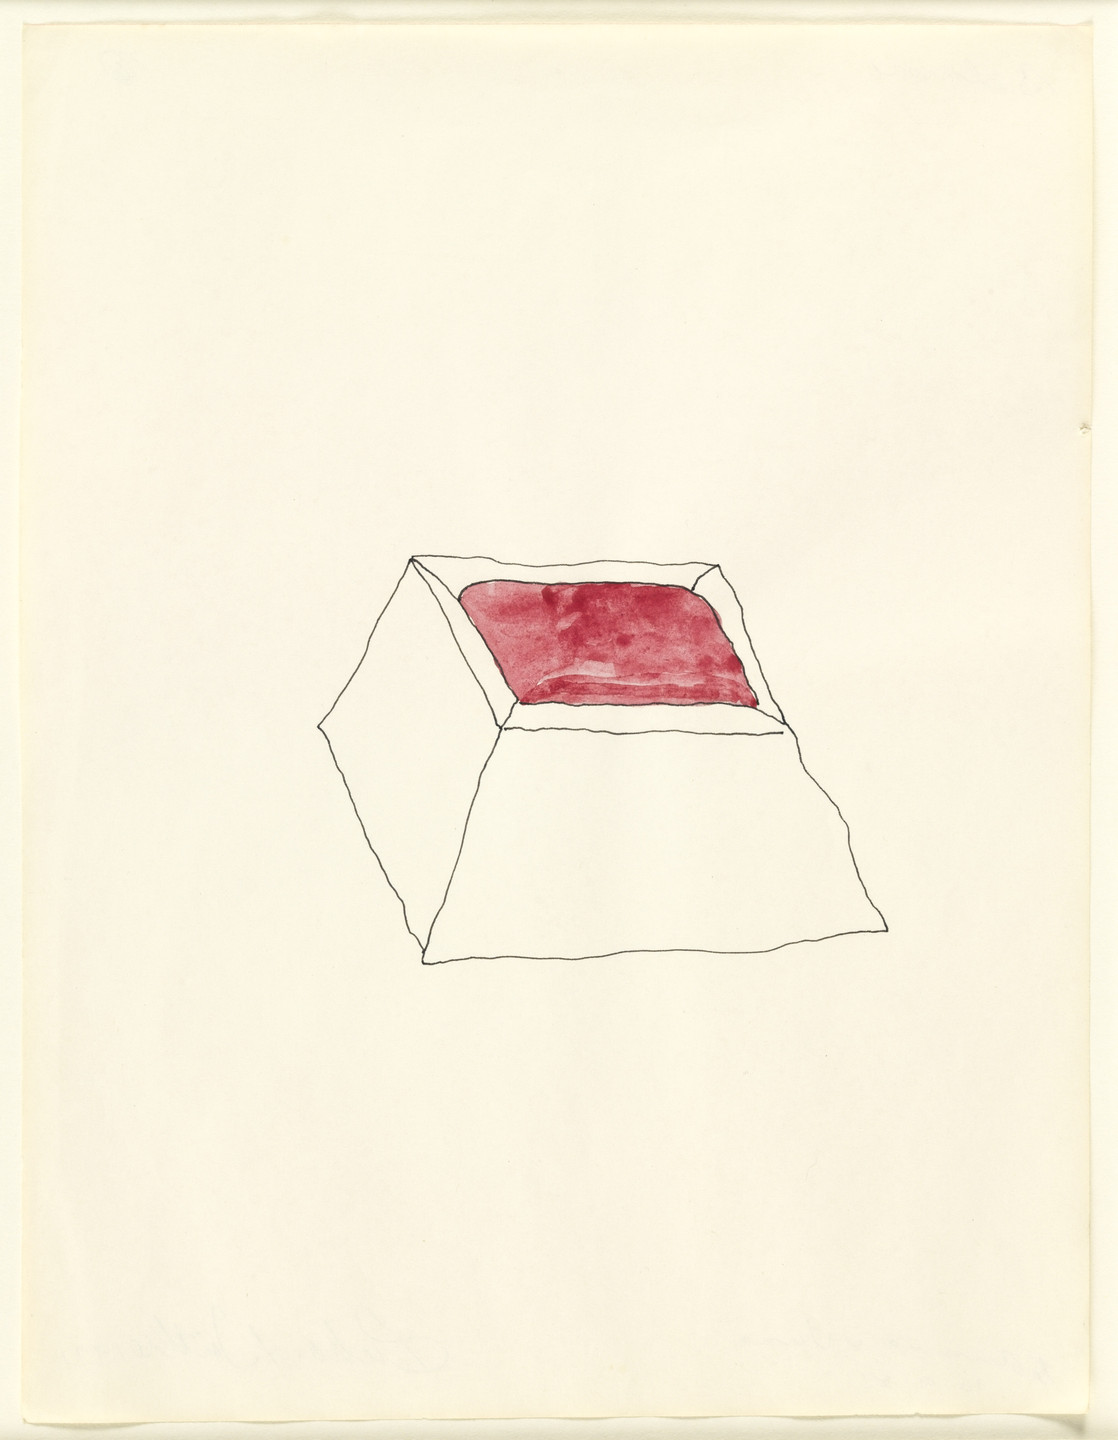 Richard Tuttle. Untitled. 1971